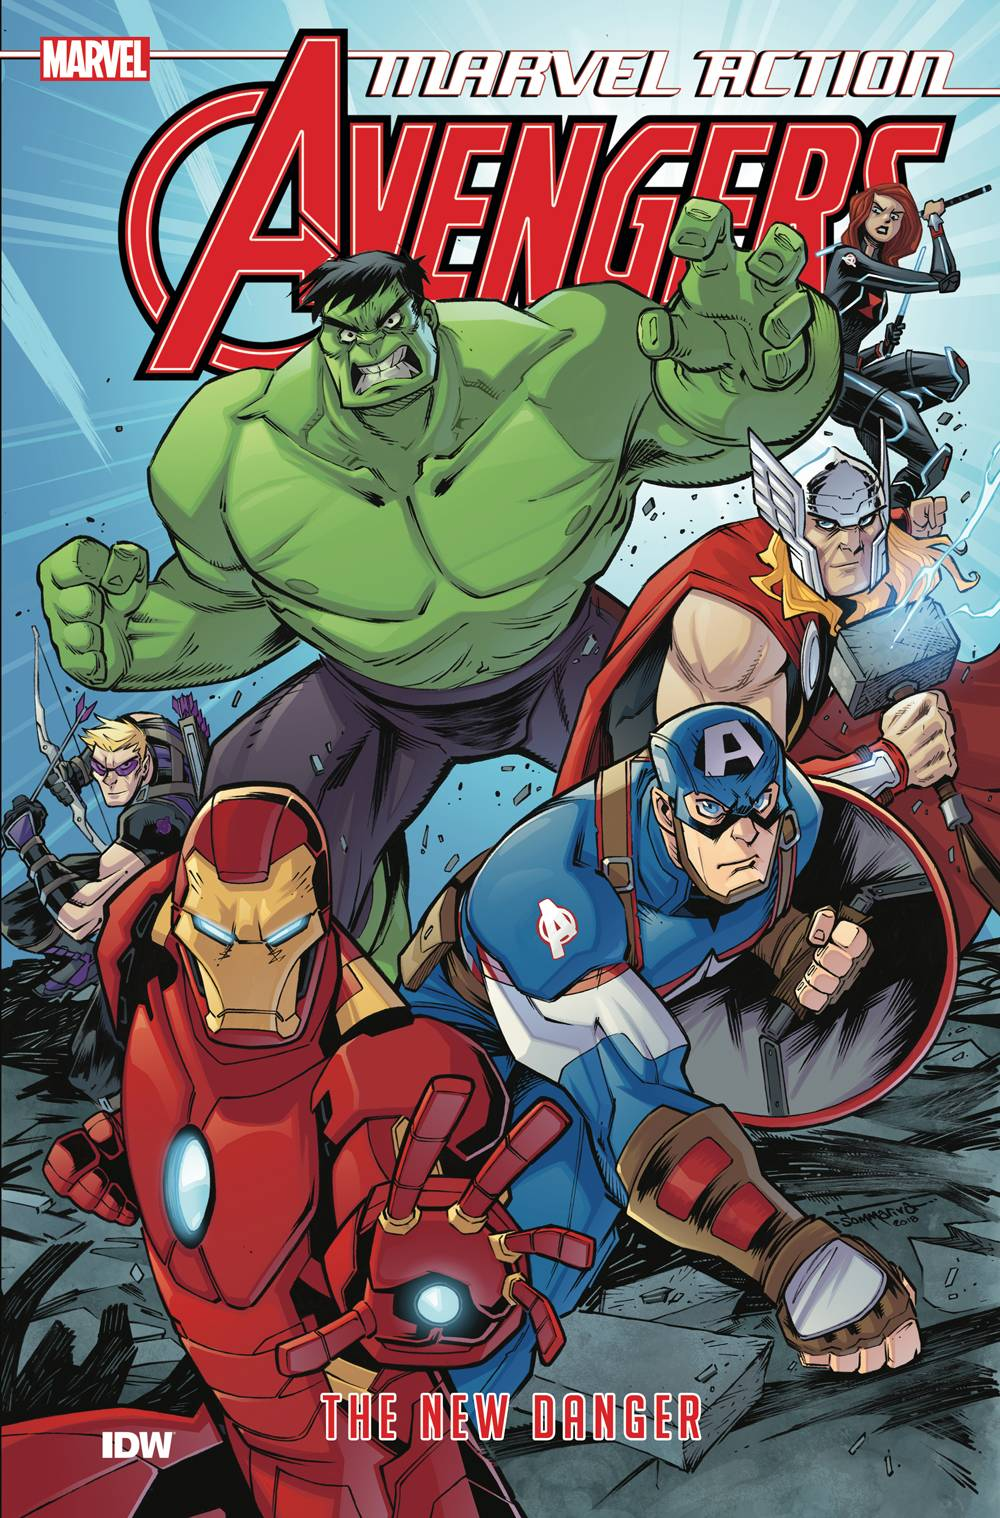 Marvel Action Avengers TP Vol. 1 New Danger